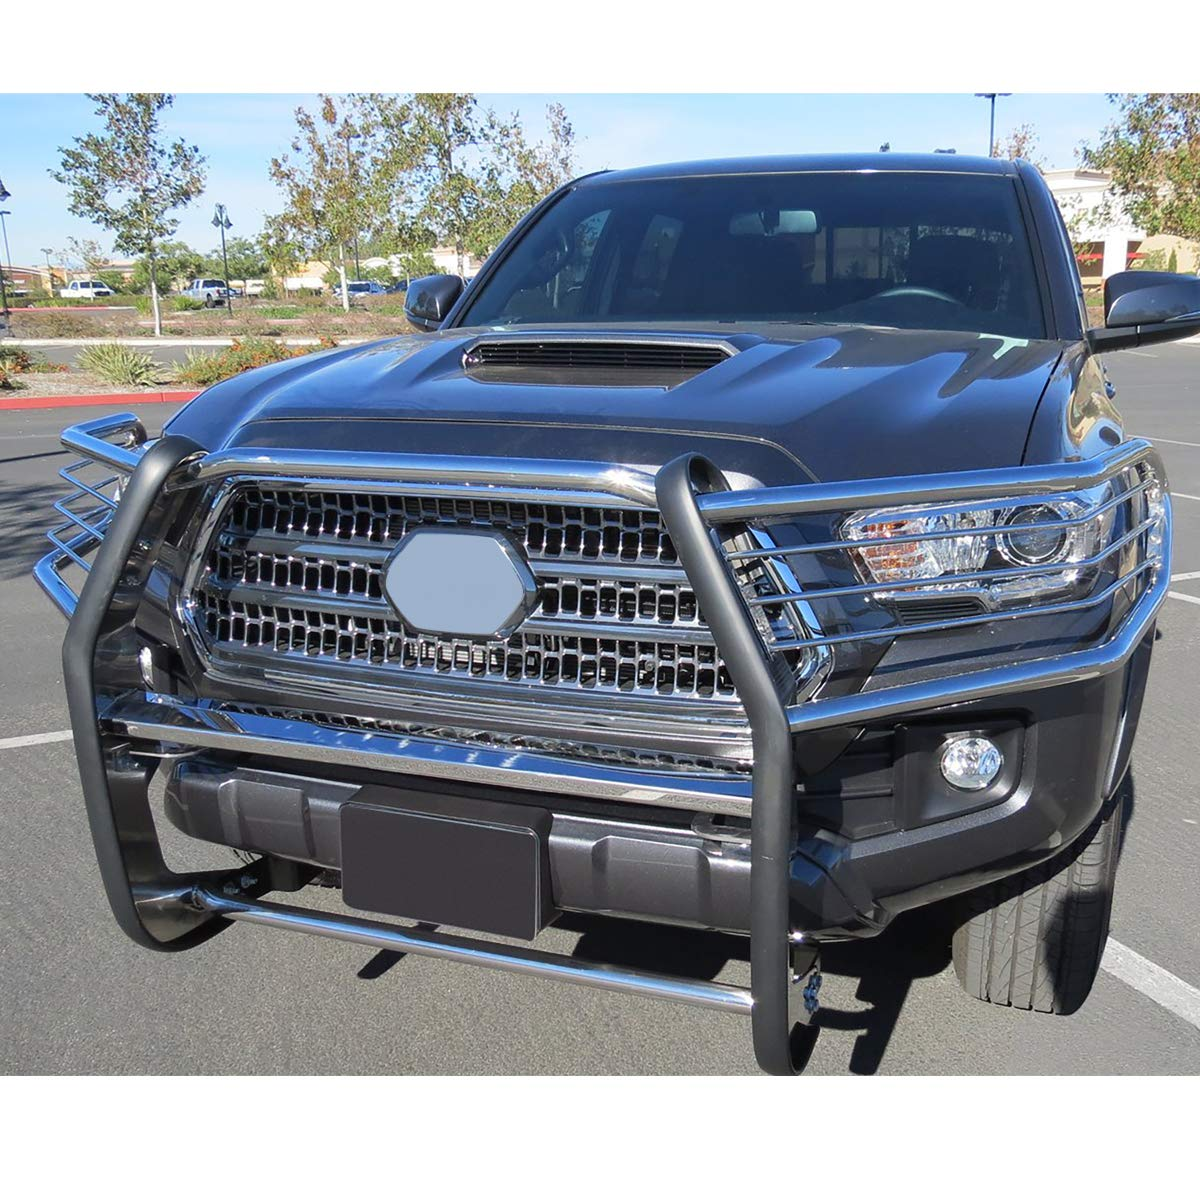 Pair 1.5OD Bars Stainless Front Bumper Brush Grille Guard for Toyota Tacoma 16-19